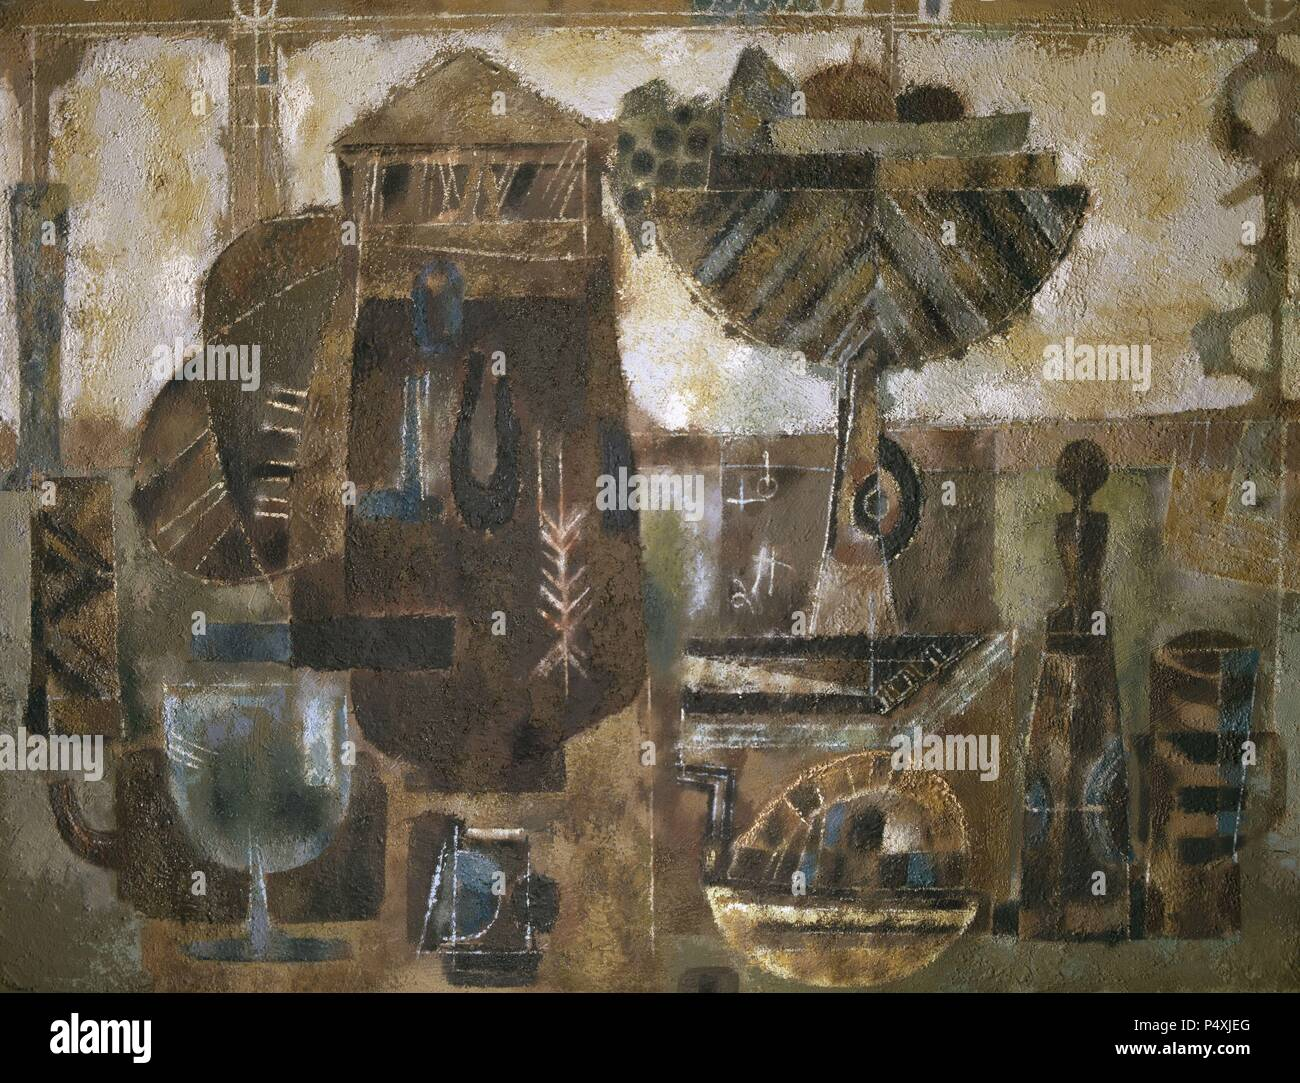 Arte Definition En Espanol Abstractedness Stock Photos Abstractedness Stock Images Alamy